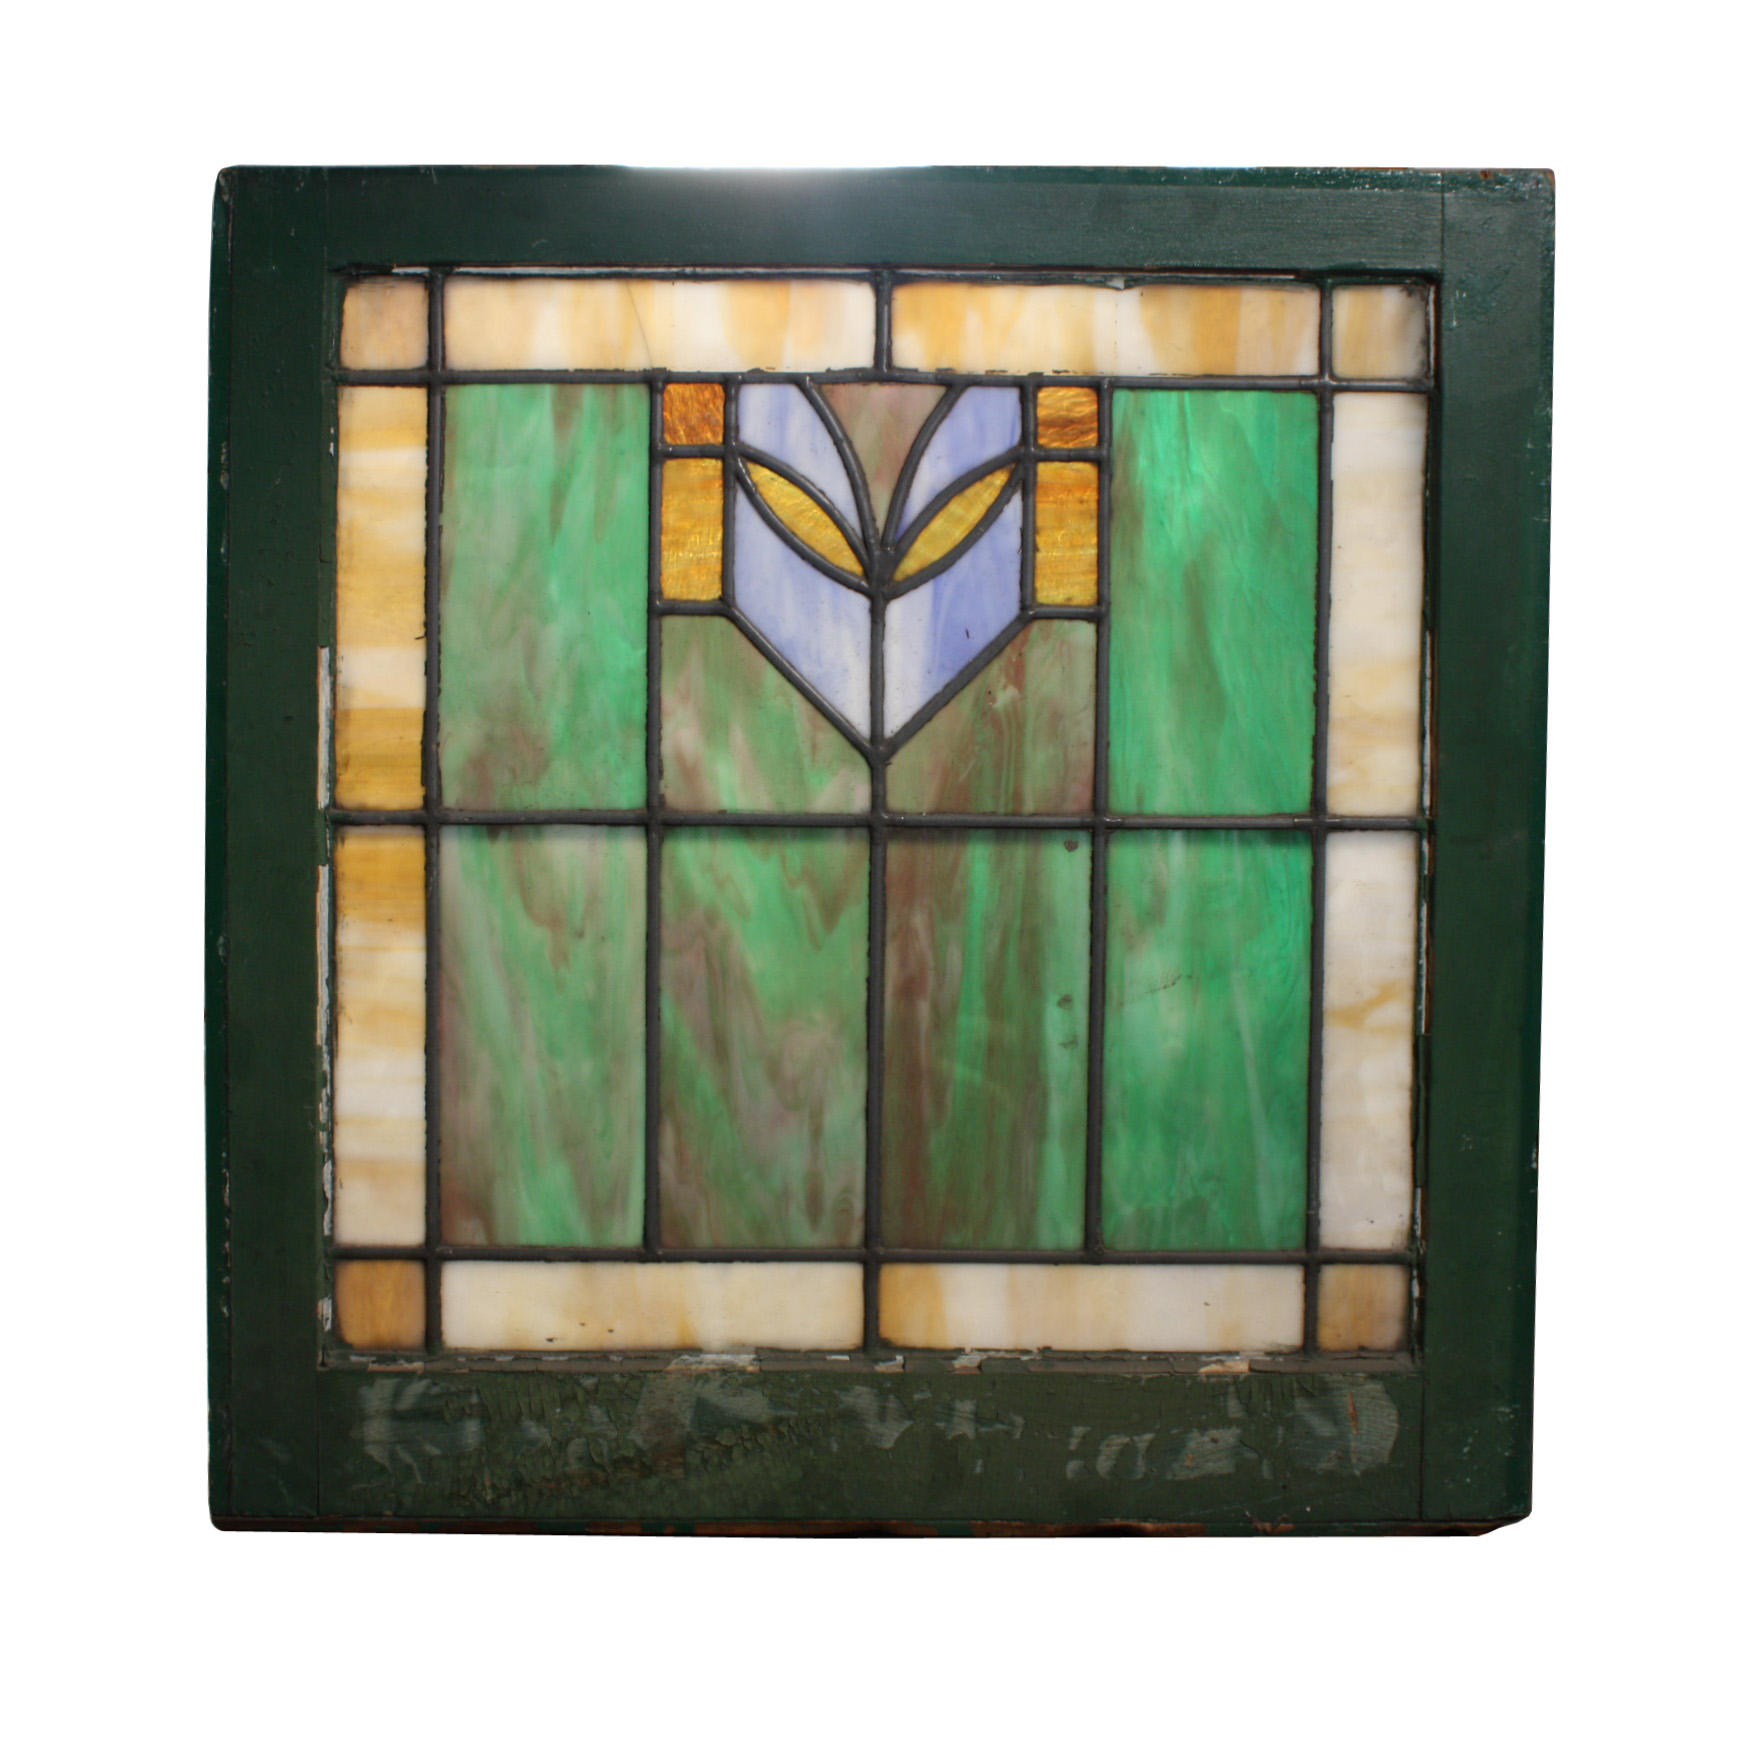 Gorgeous Antique American Stained Glass Window With Multi